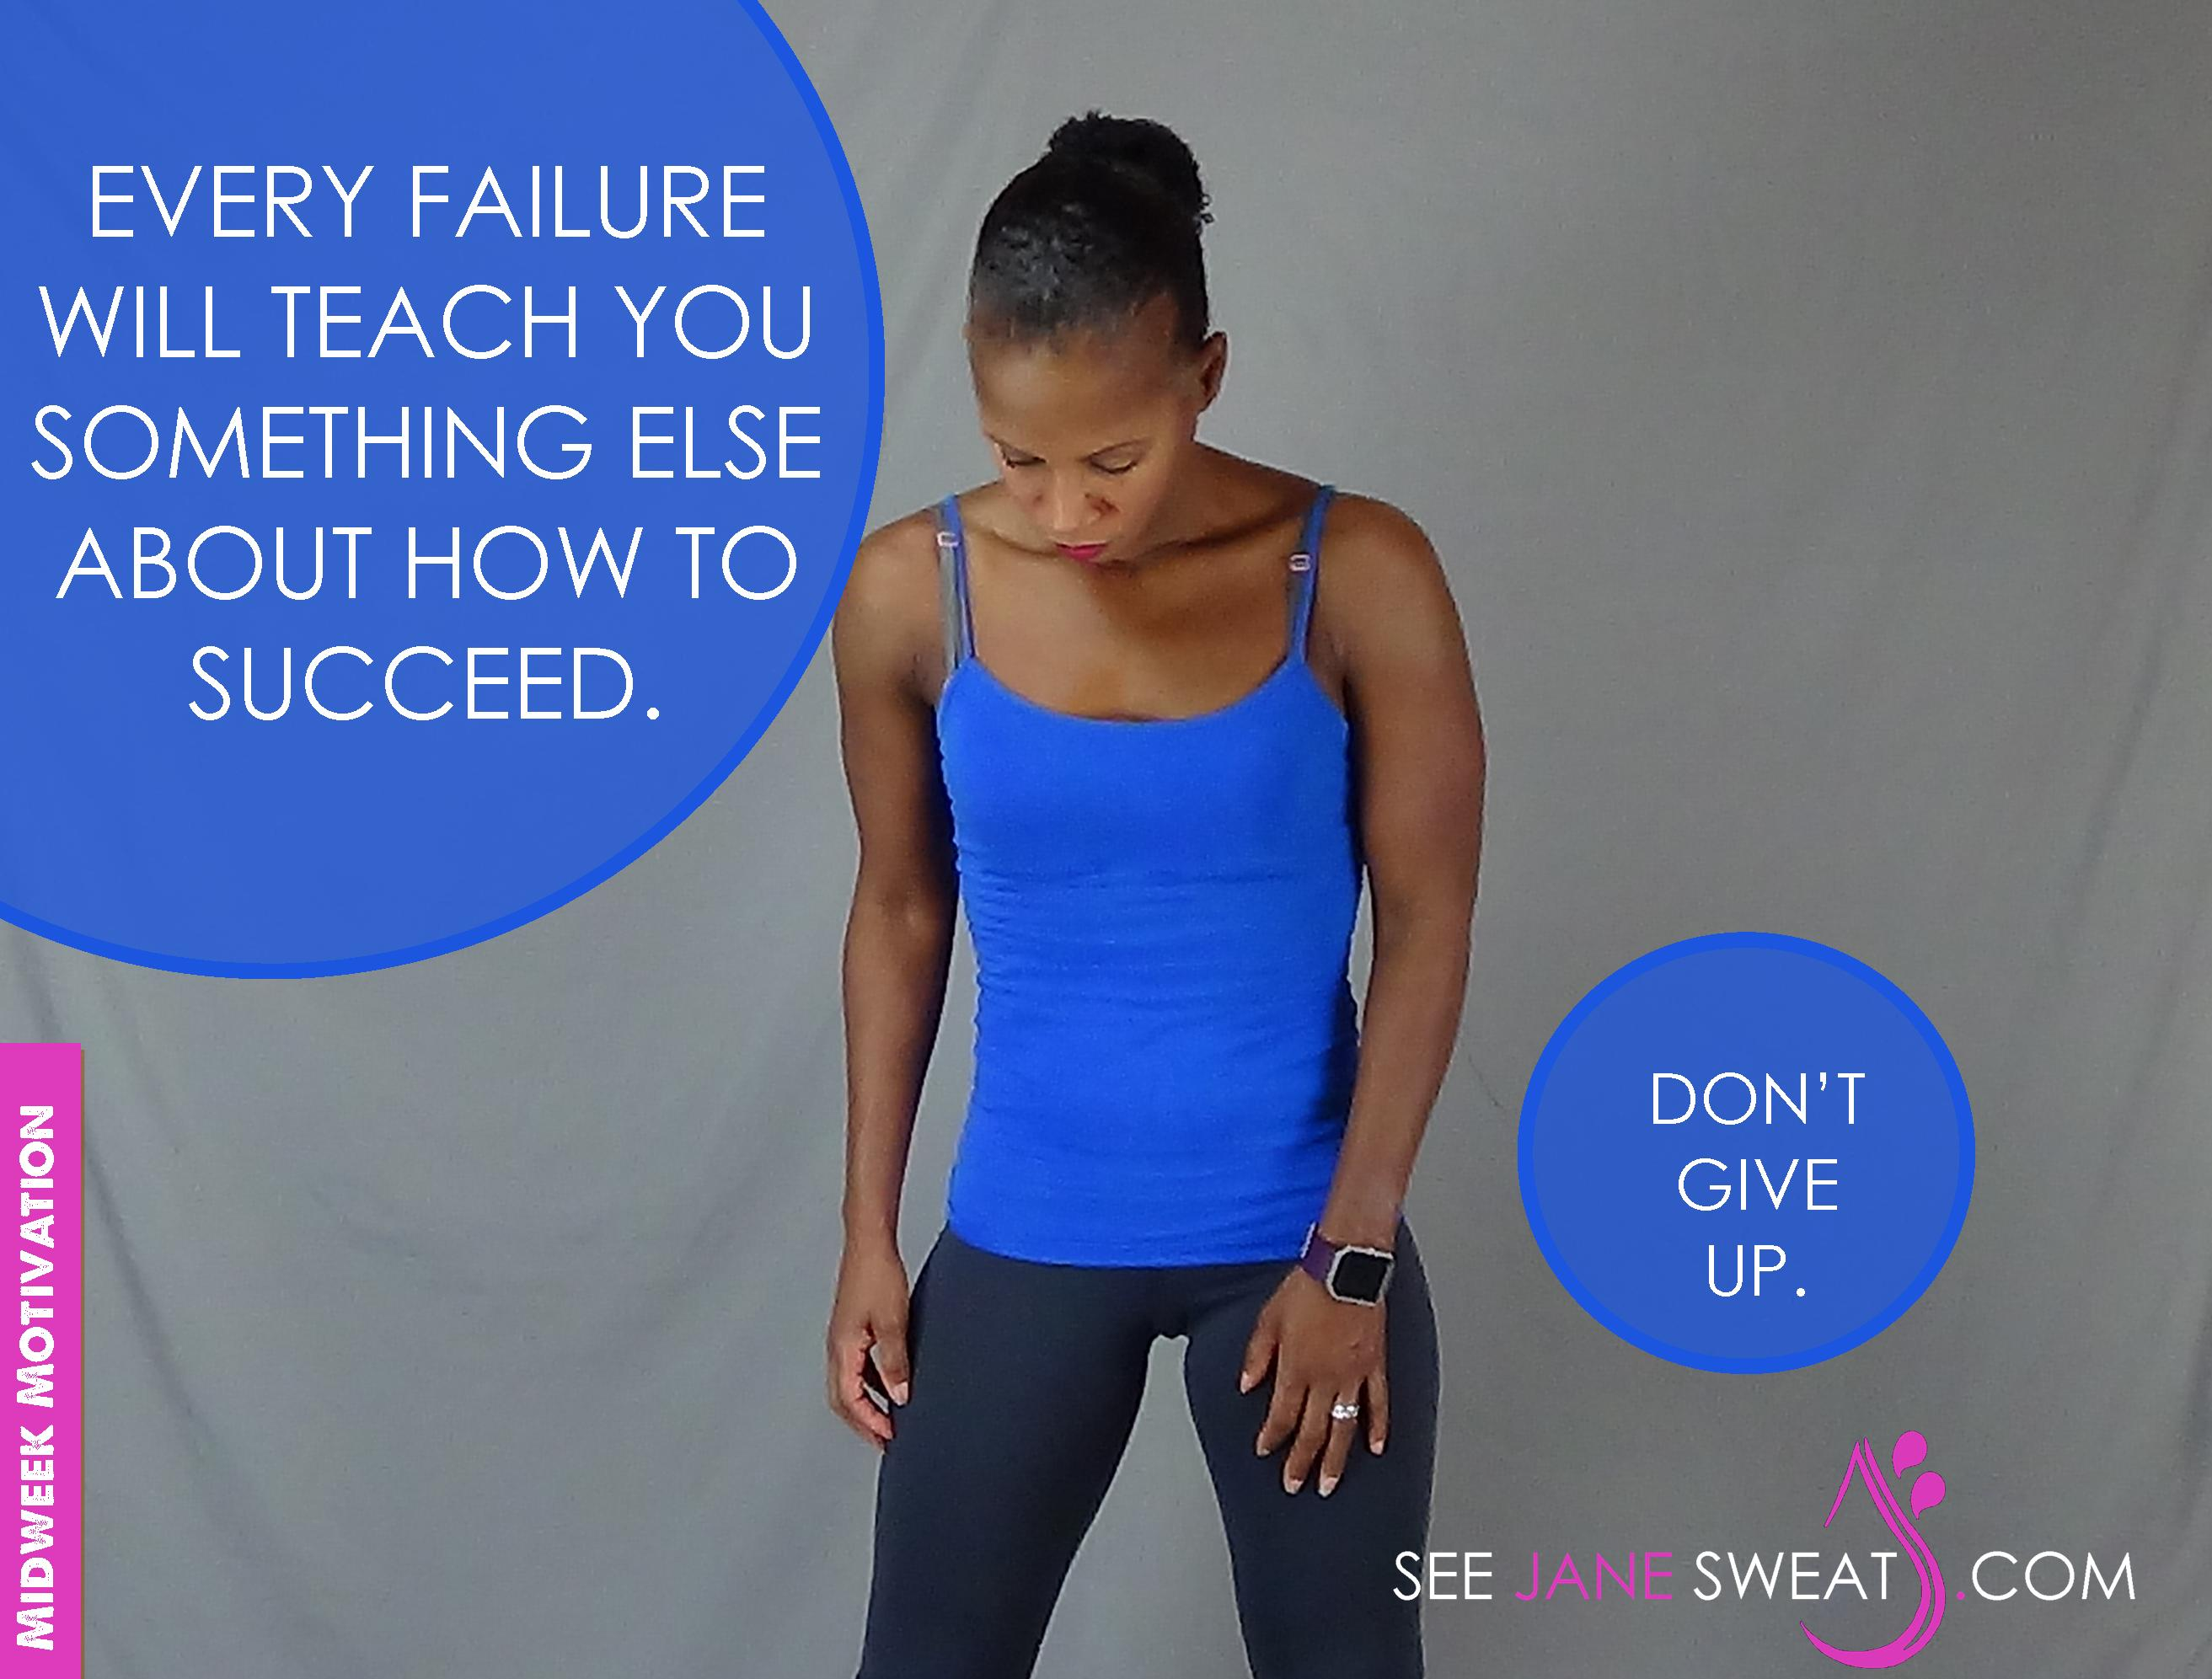 Midweek Motivation - Every Failure Will...